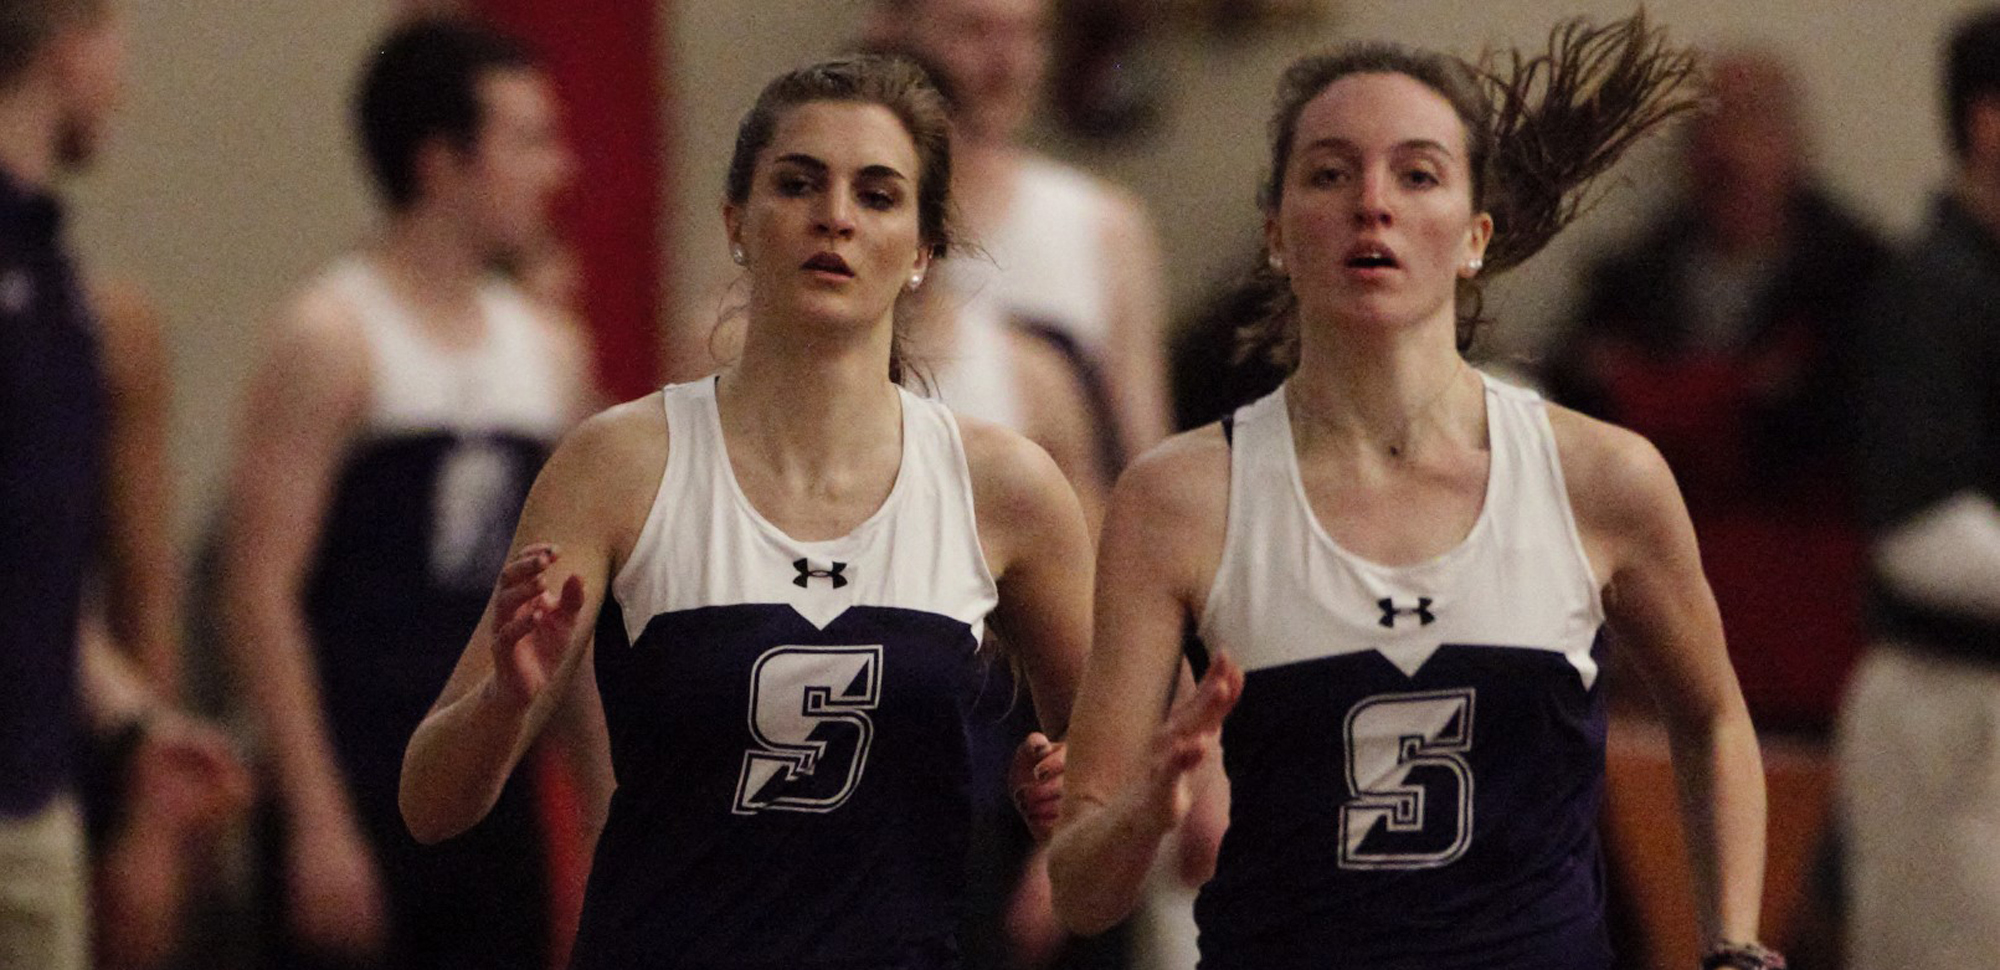 Emily Way, Emily de Onis, and the Royals have been picked sixth in the 2018-19 Landmark Conference indoor preseason poll.